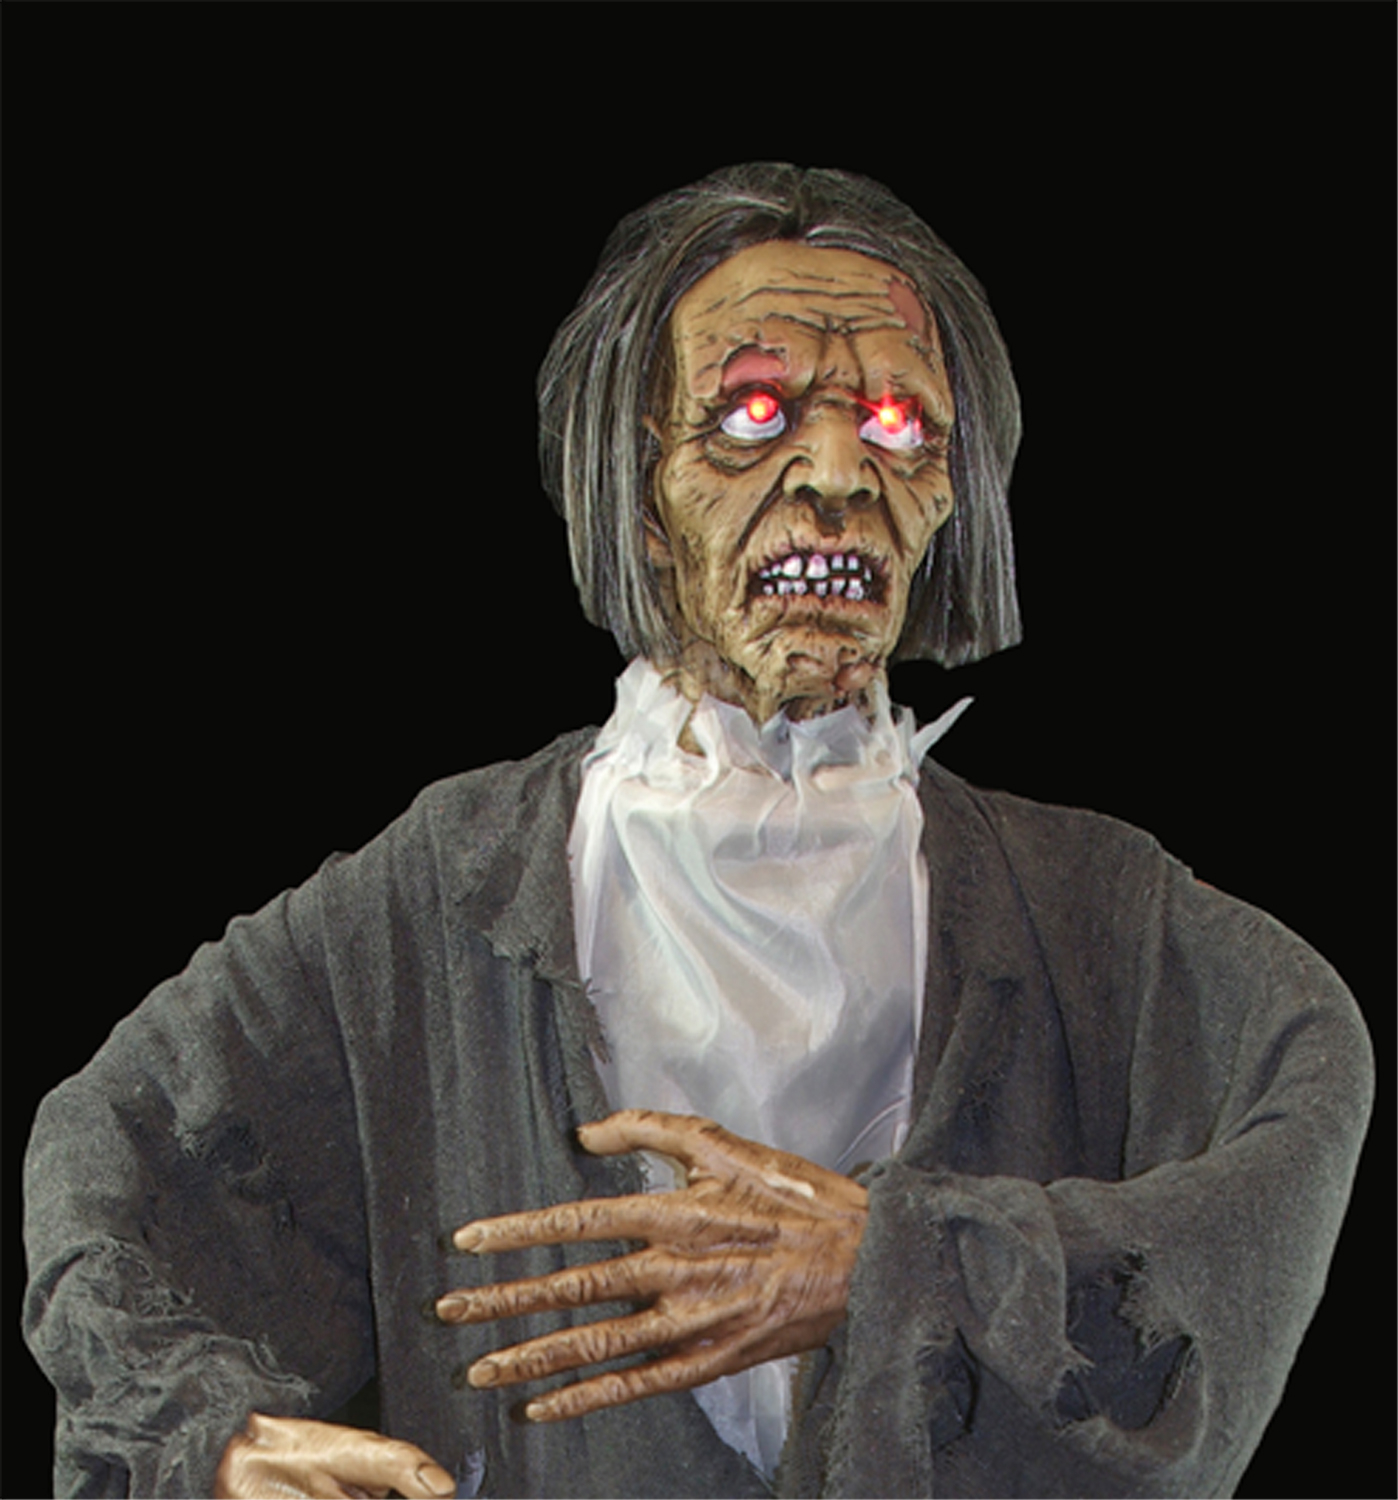 Indoor Outdoor Cheap Discount Sale Wholesale Halloween Props Decorations - LIFE SIZE ZOMBIES, GHOULS, CORPSES, TORSOS, DEAD BODIES, SEVERED HEADS